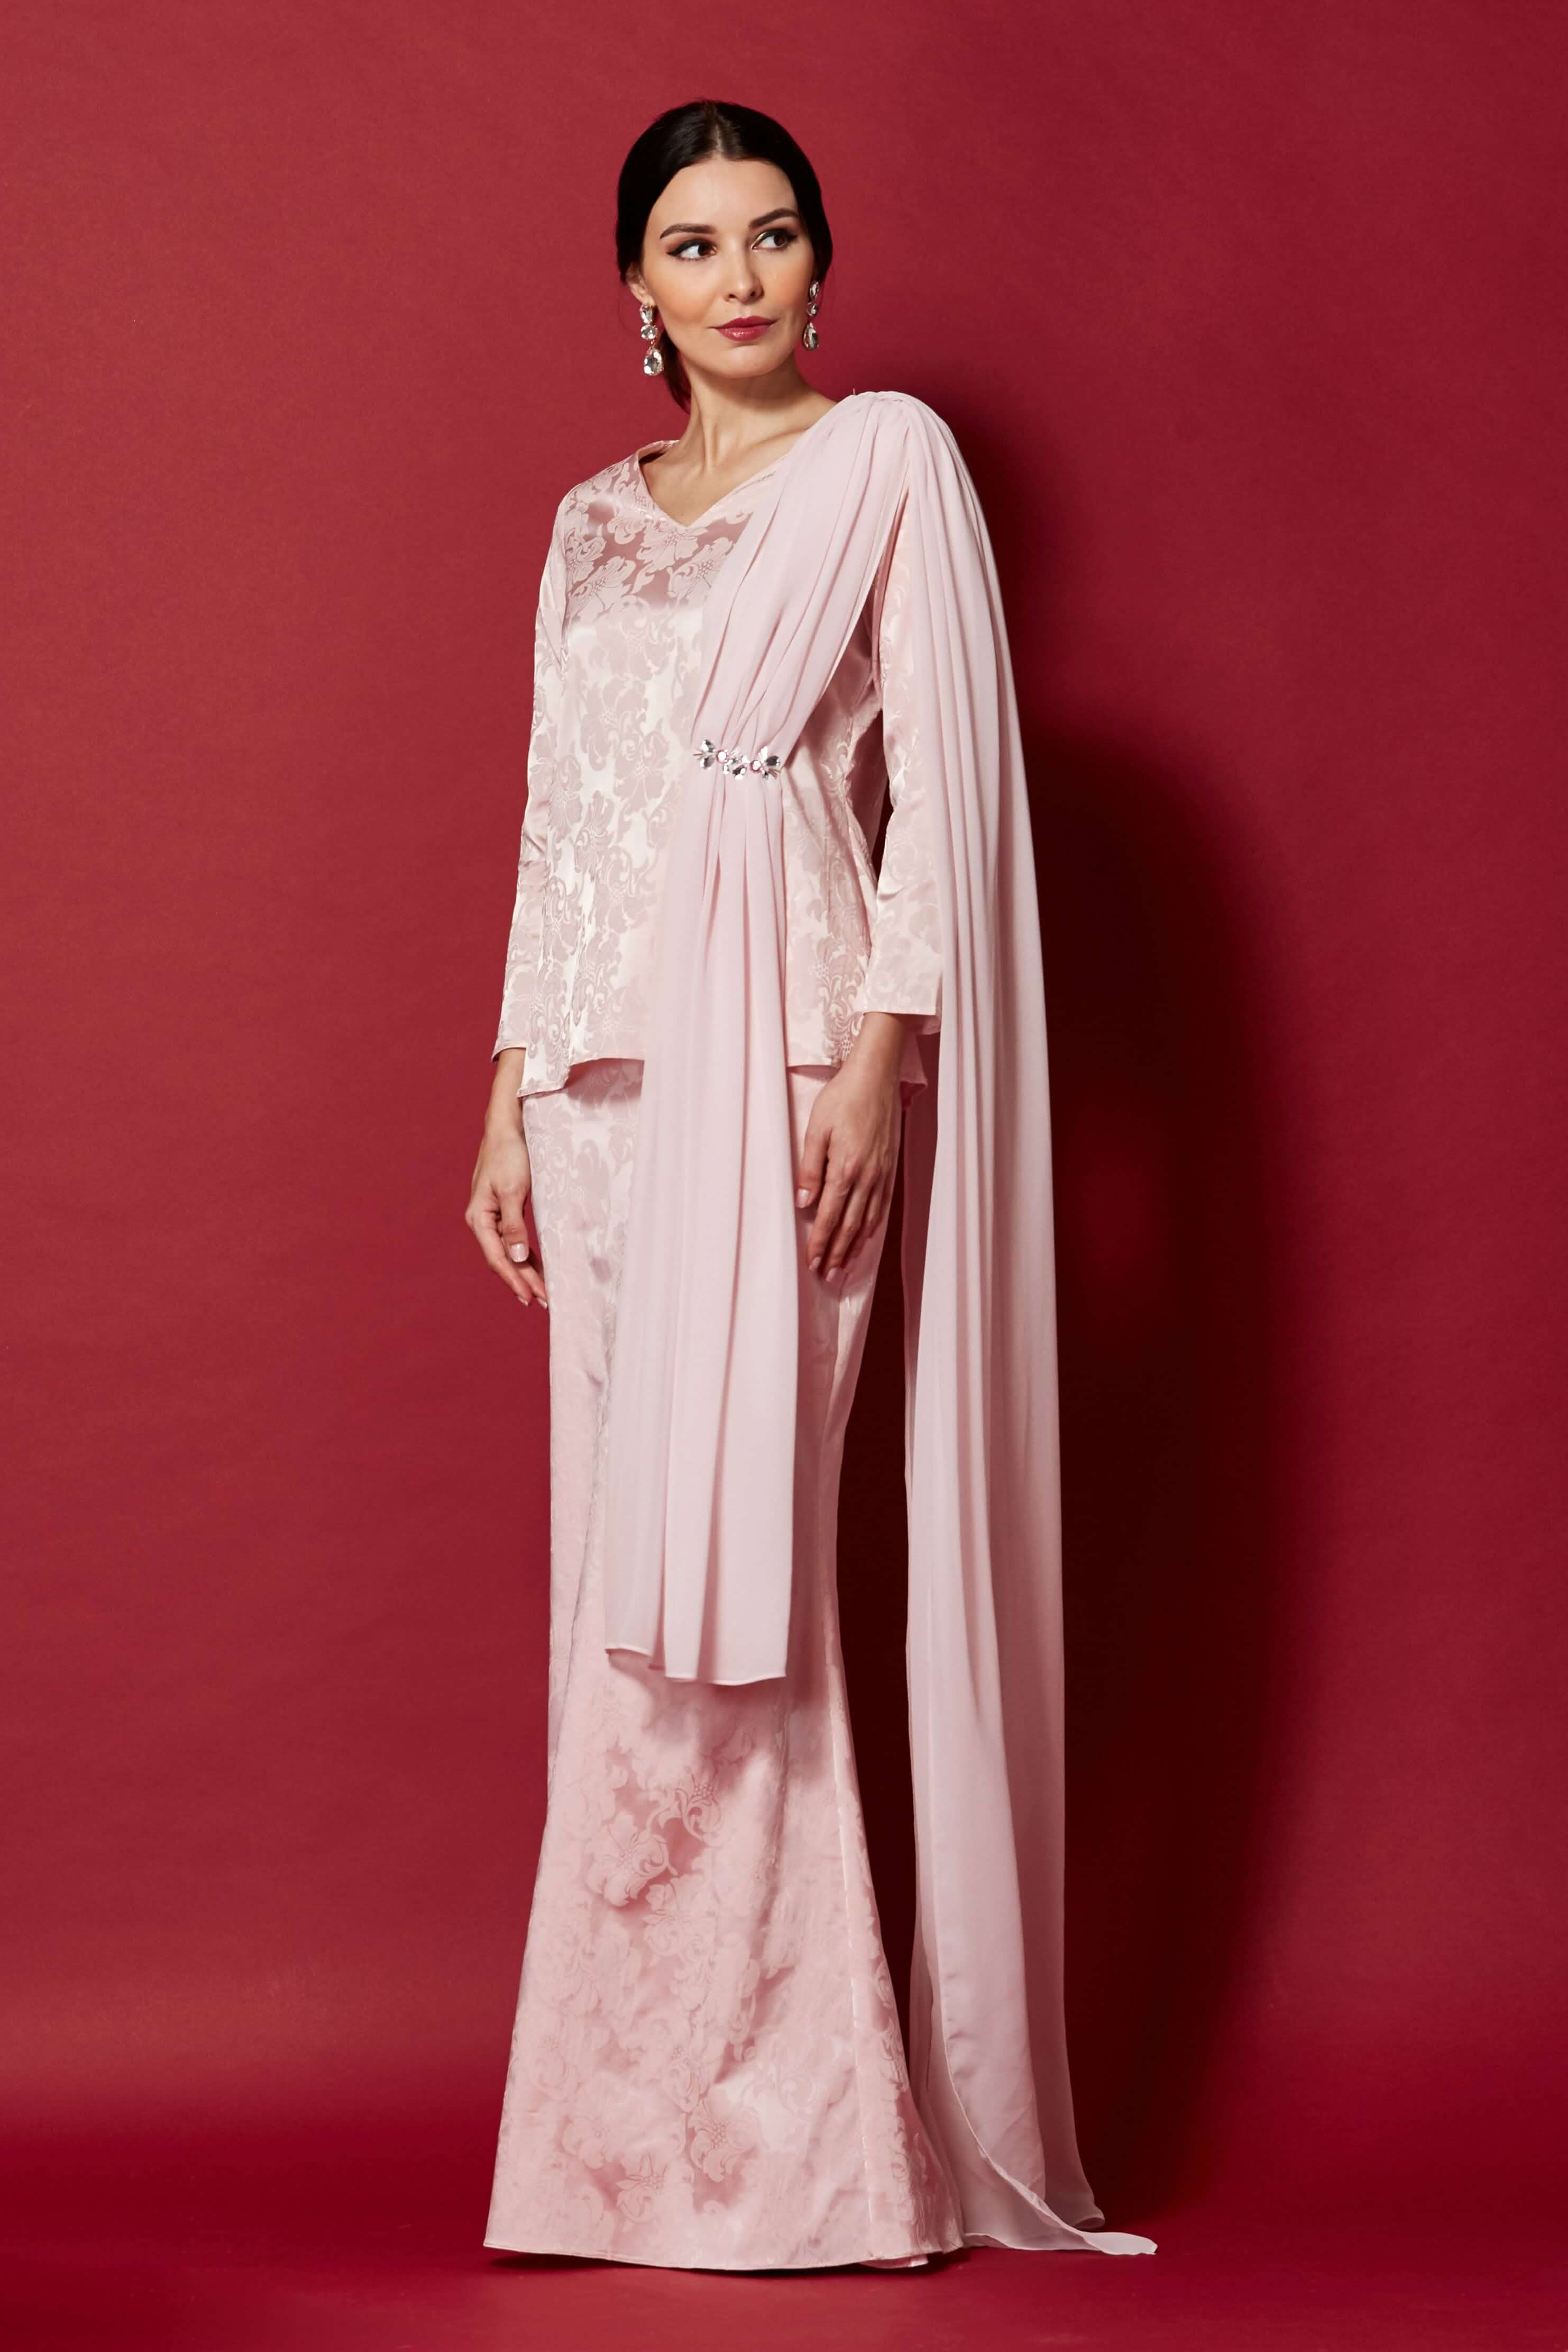 Pink Top With Attached Shawl & Embellishment (2)